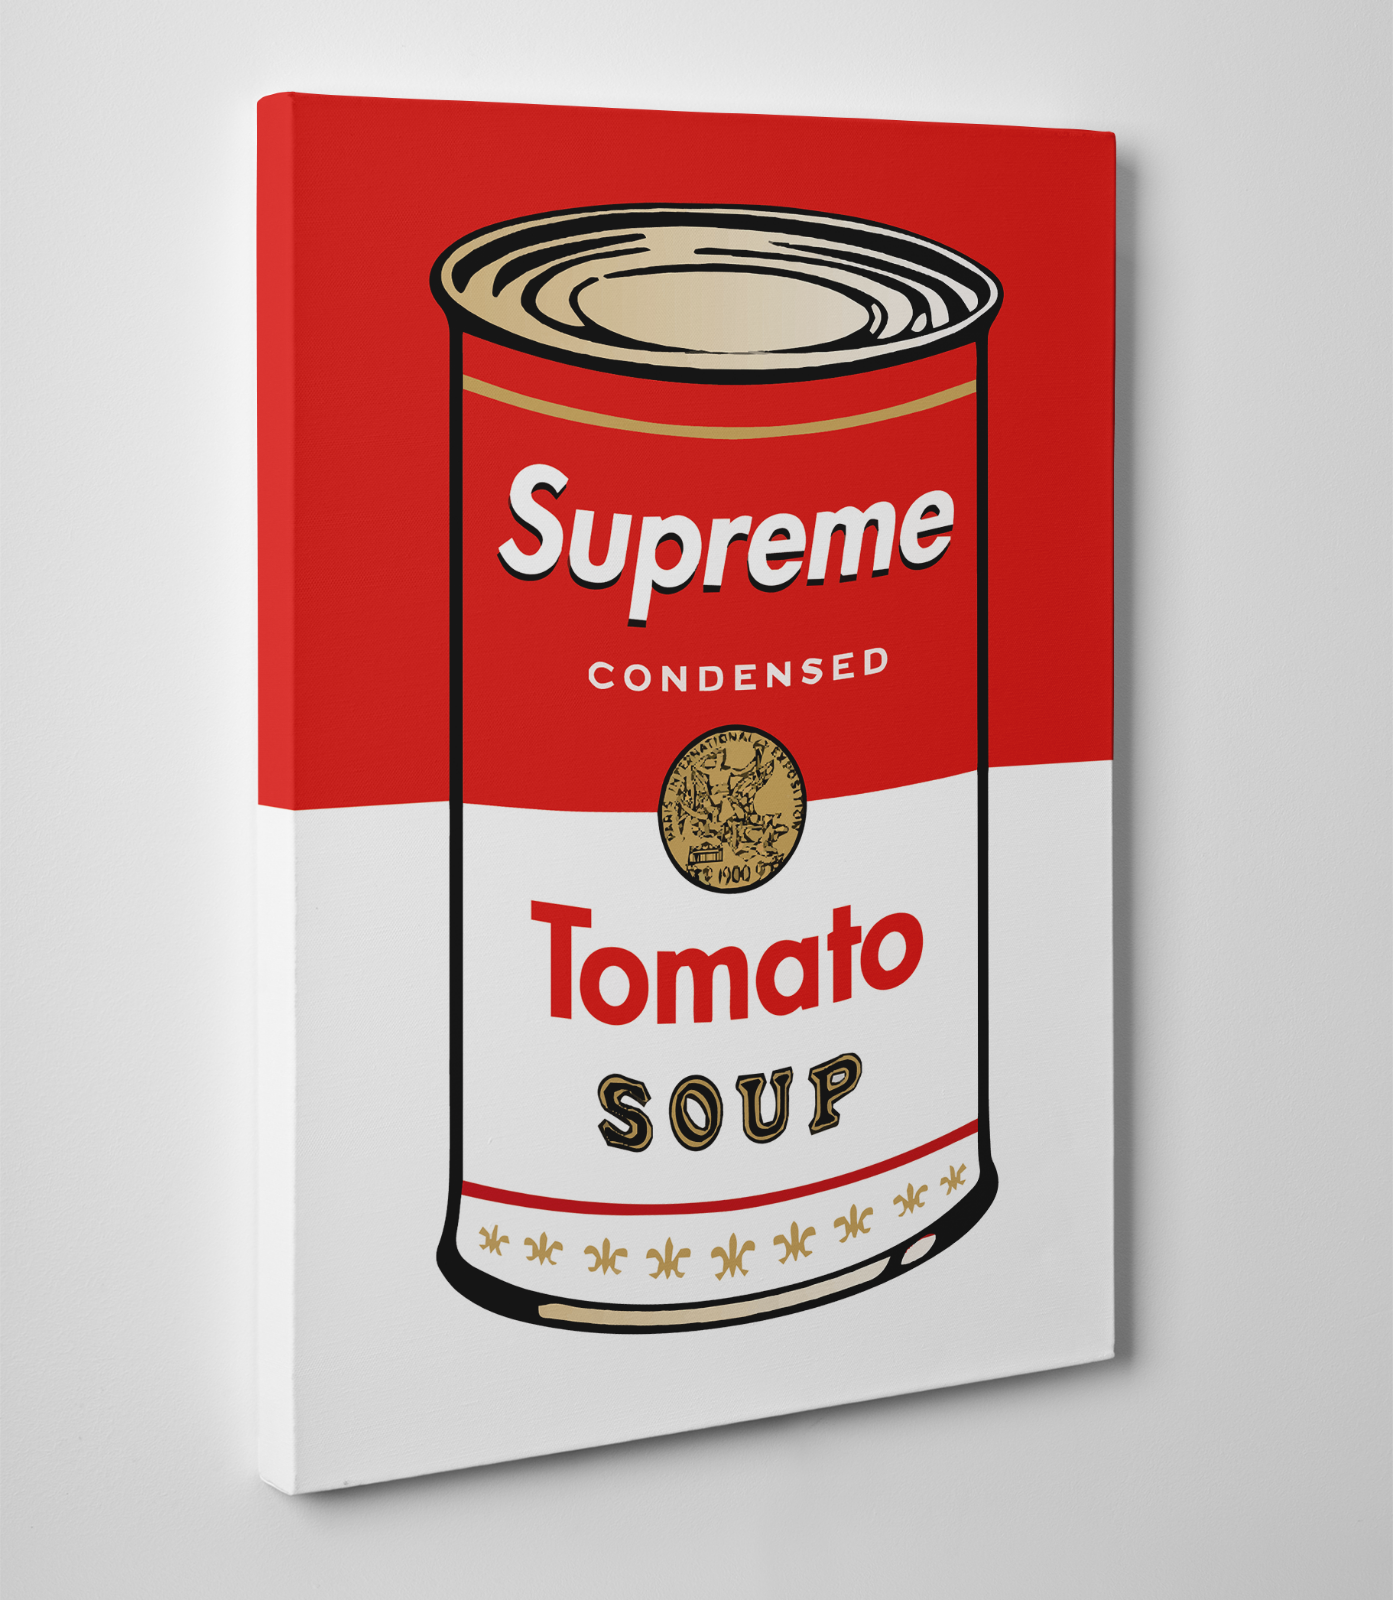 5b4be36264f0 SUPREME X ANDY WARHOL Tomato Soup Campbells Can Gallery Art Canvas Series  11x14